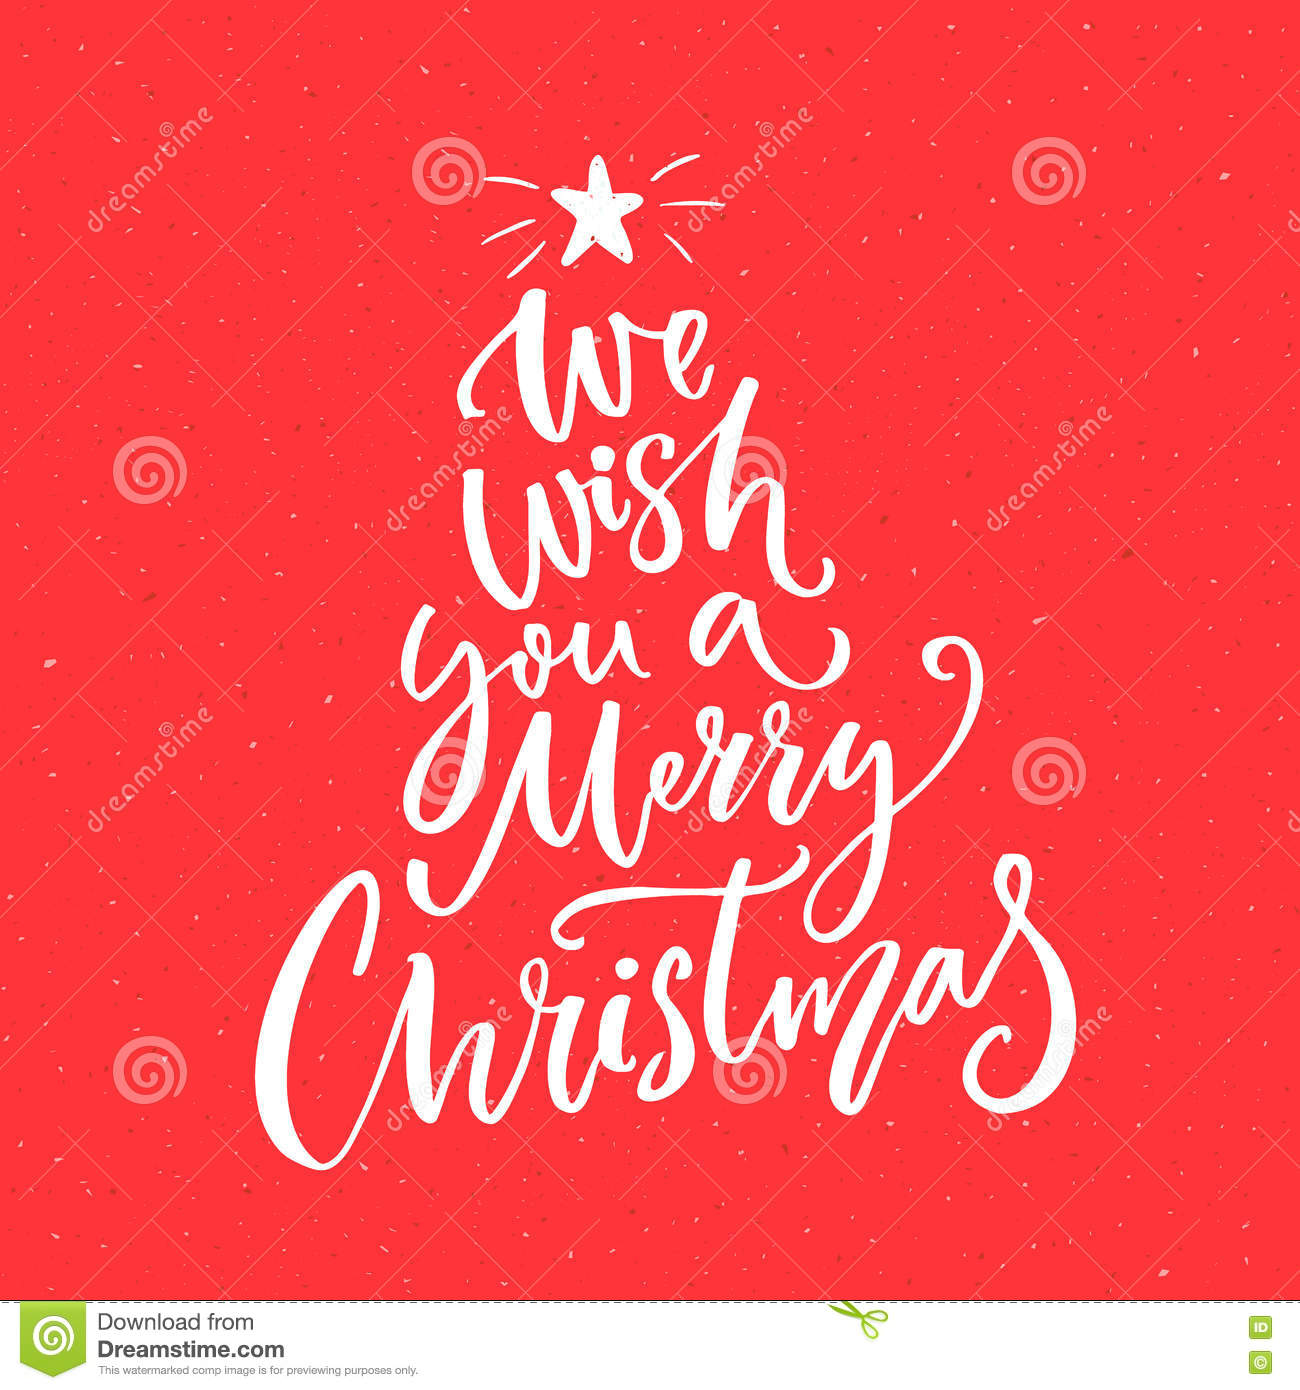 We Wish You A Merry Christmas Text Calligraphy Text For